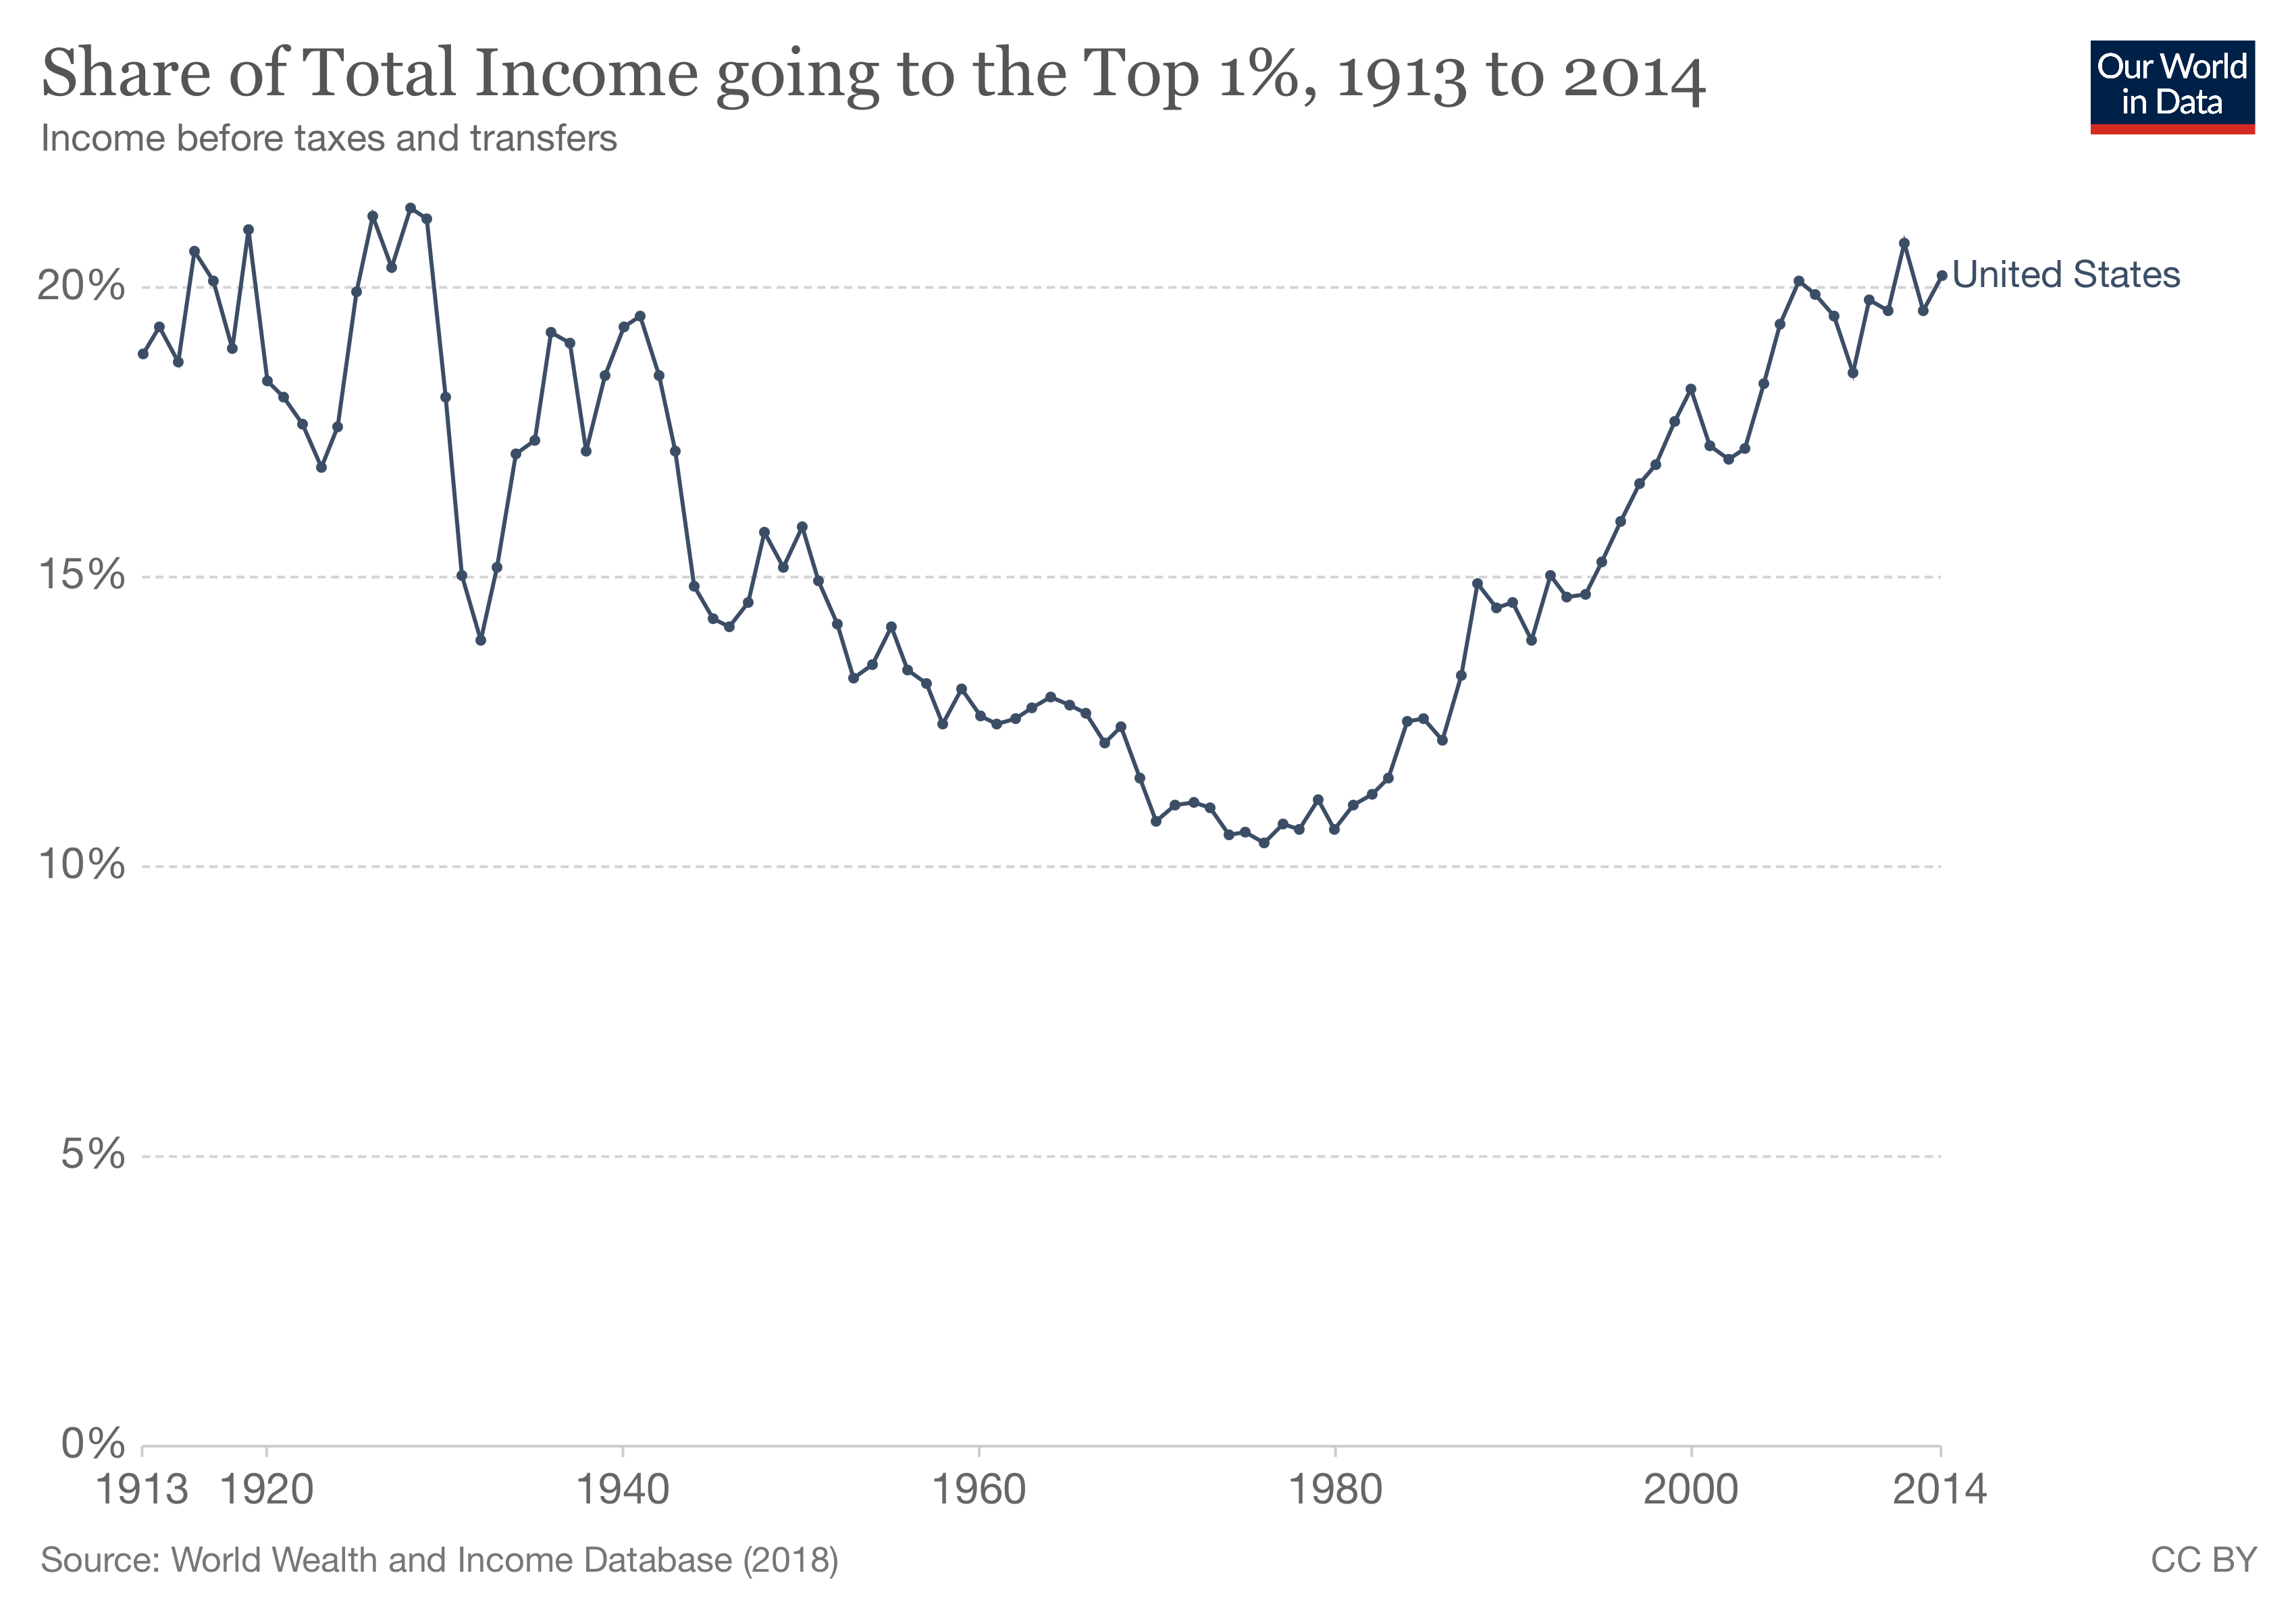 Share of Total Income going to the Top 1%, 1913 to 2014